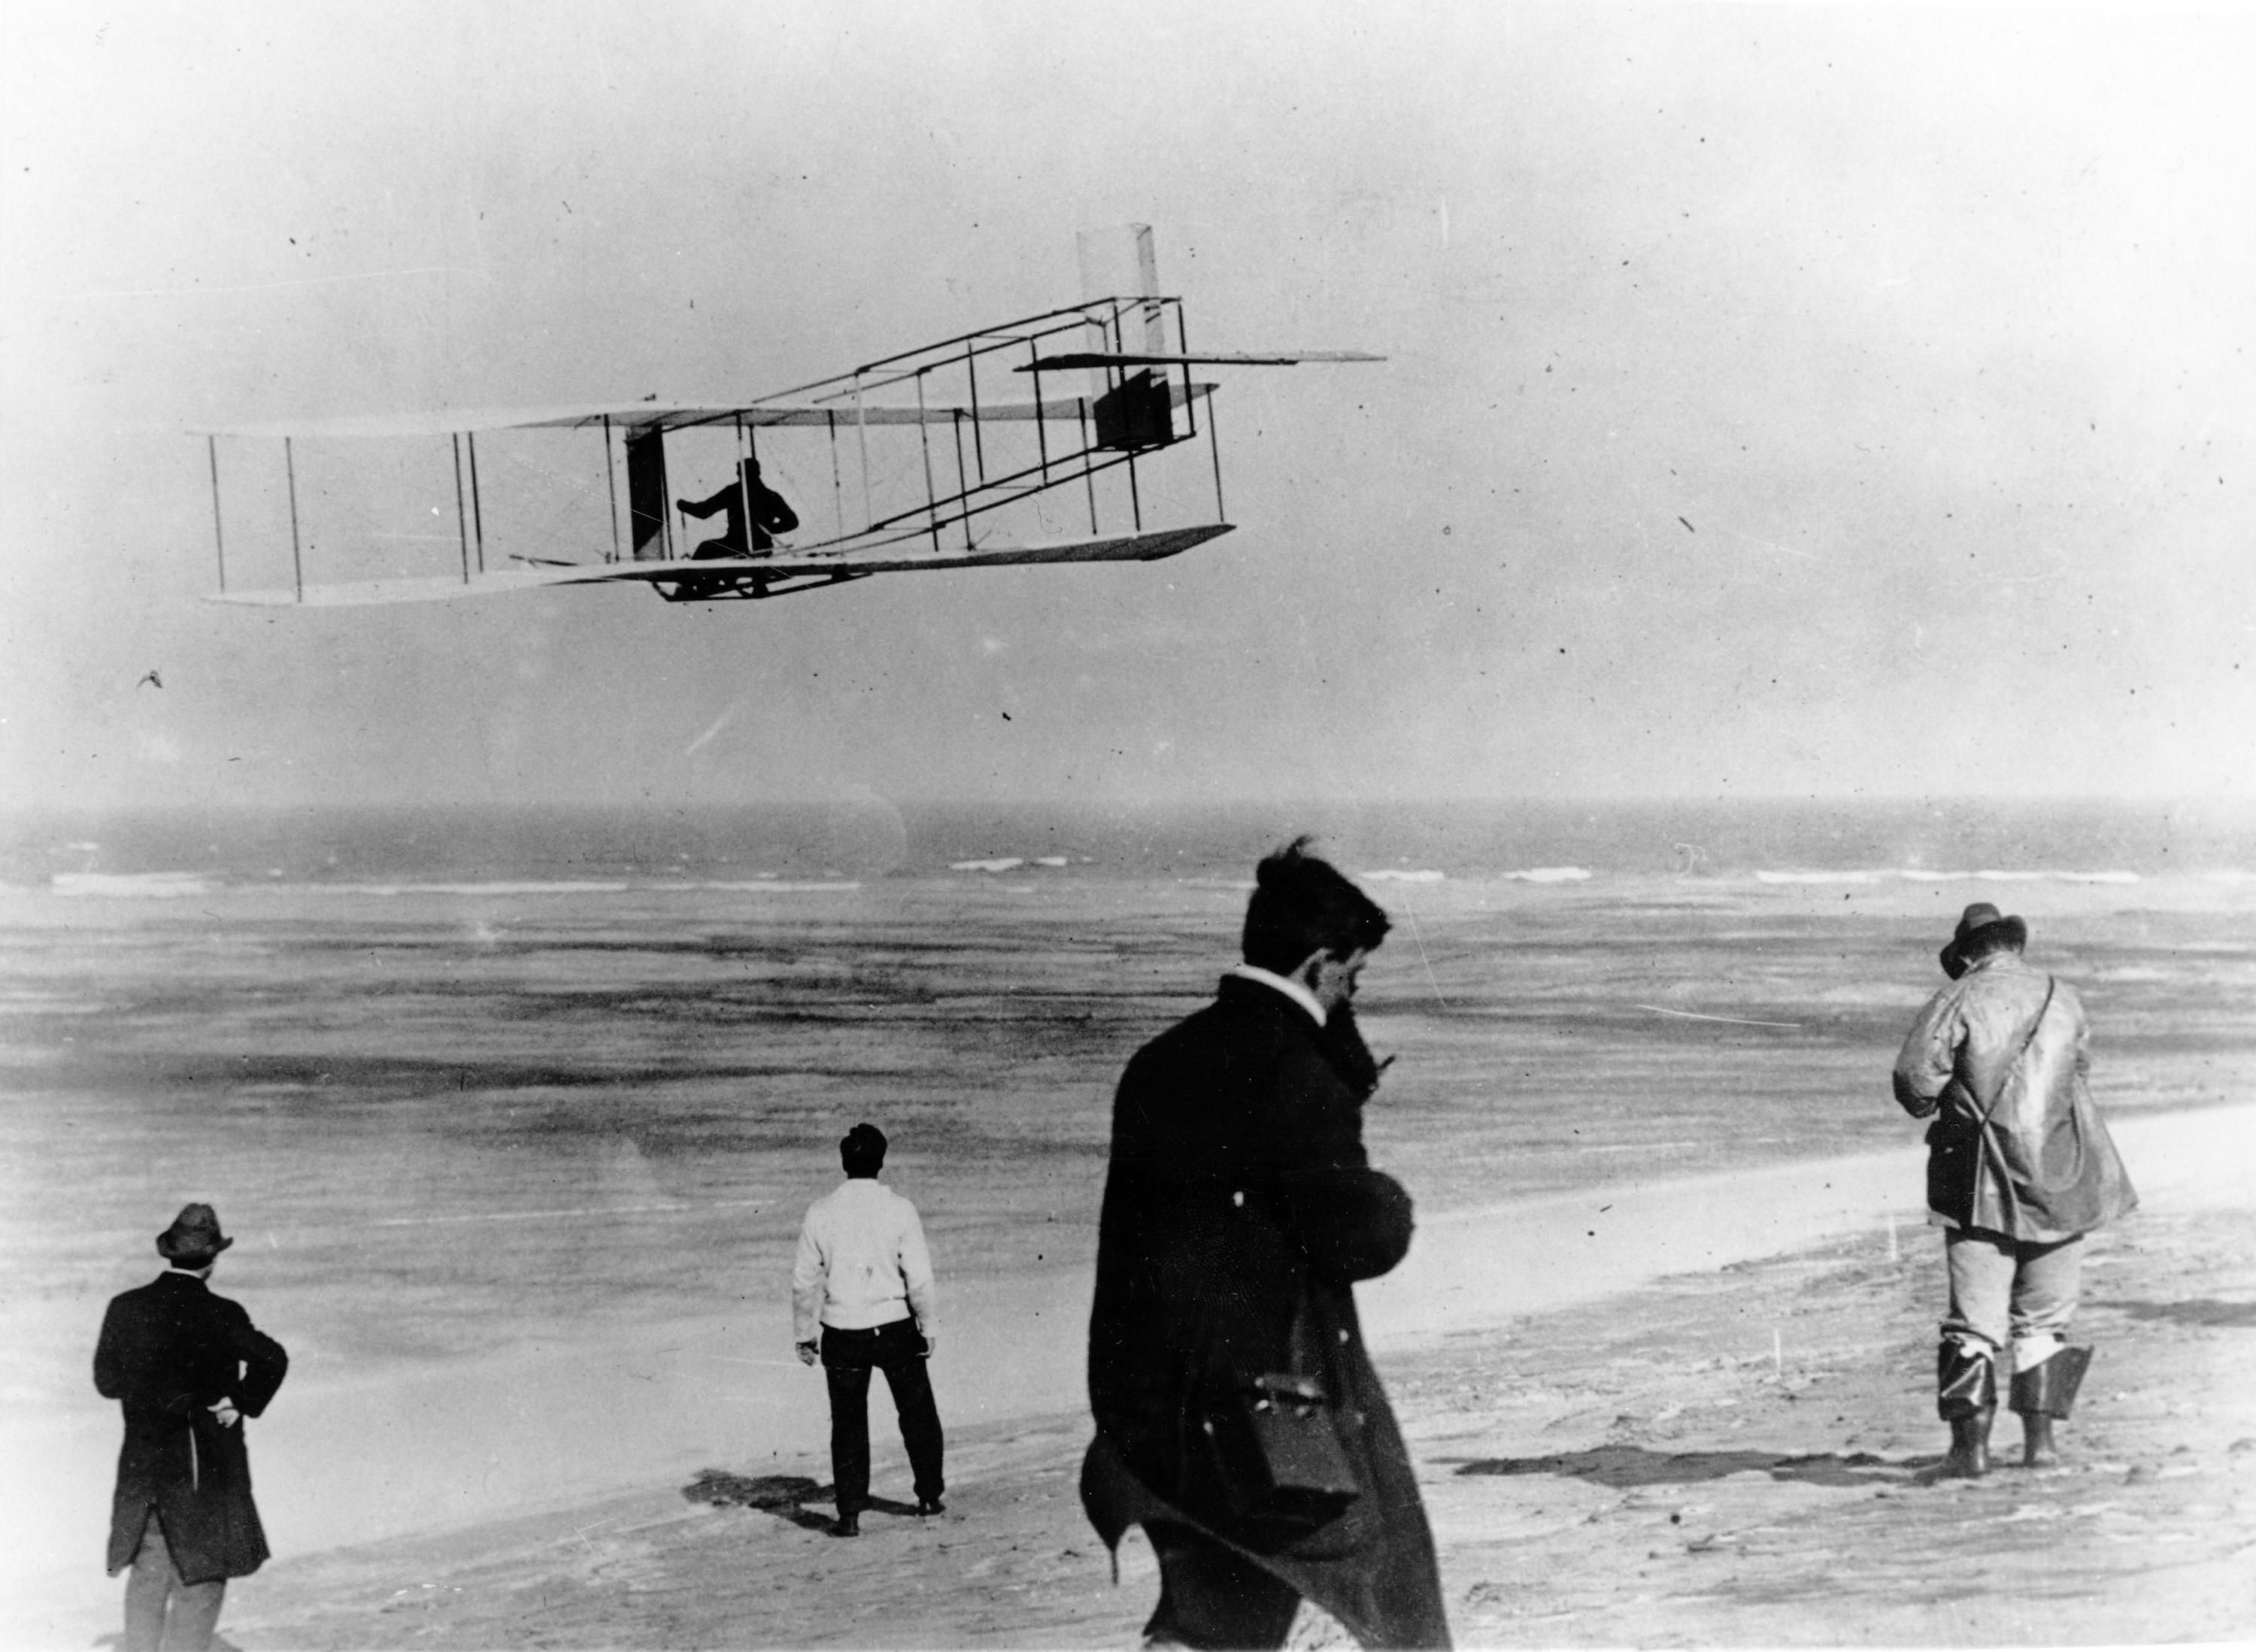 First Flight Kitty Hawk 1903 regarding after numerous failed attempts, on december 17, 1903 the wright